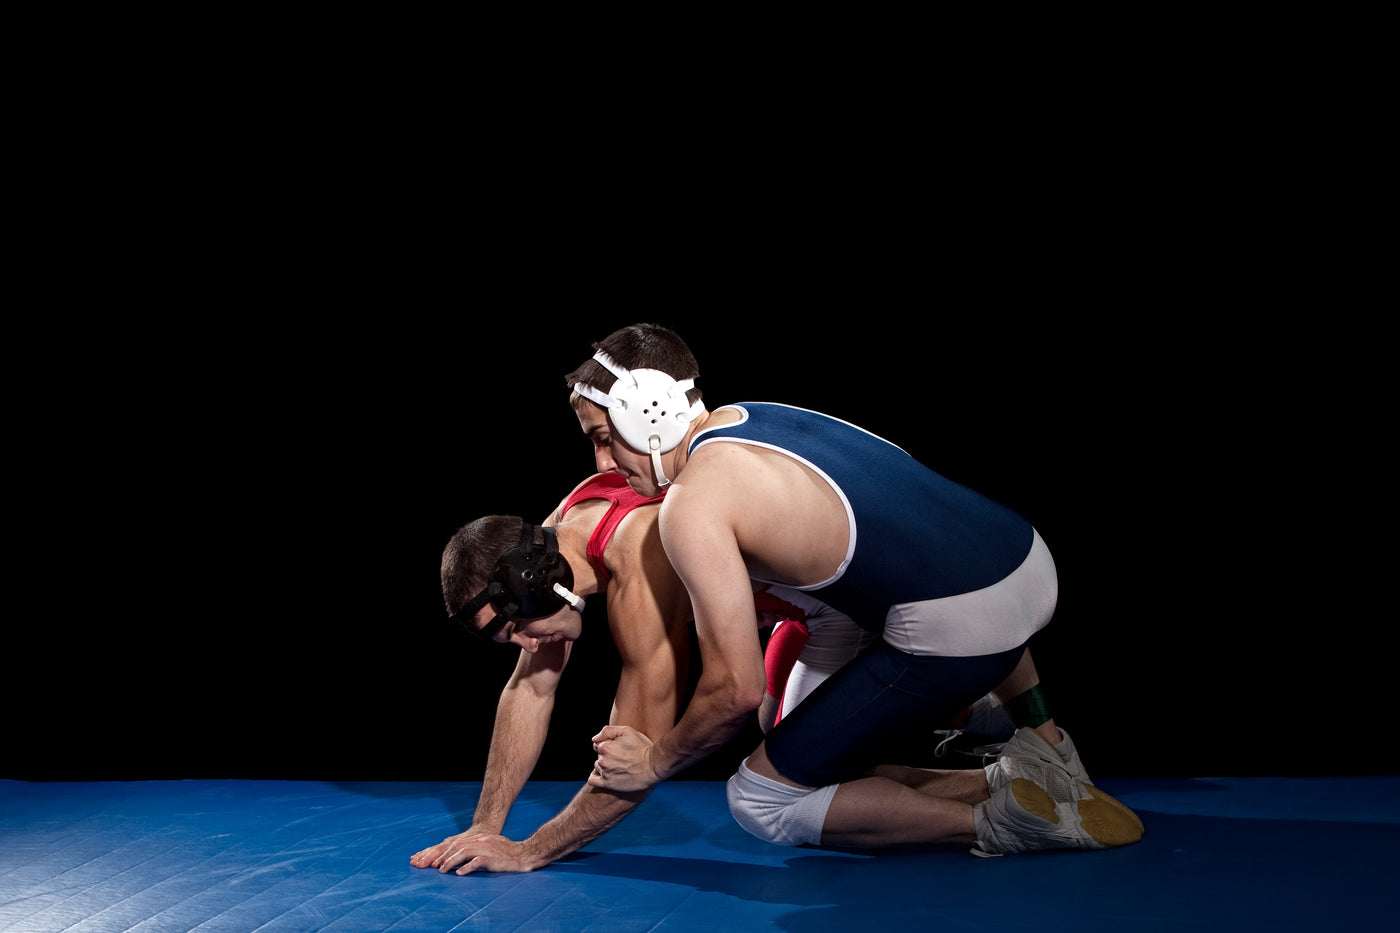 An image of two wrestlers in the referee's position on a blue mat.